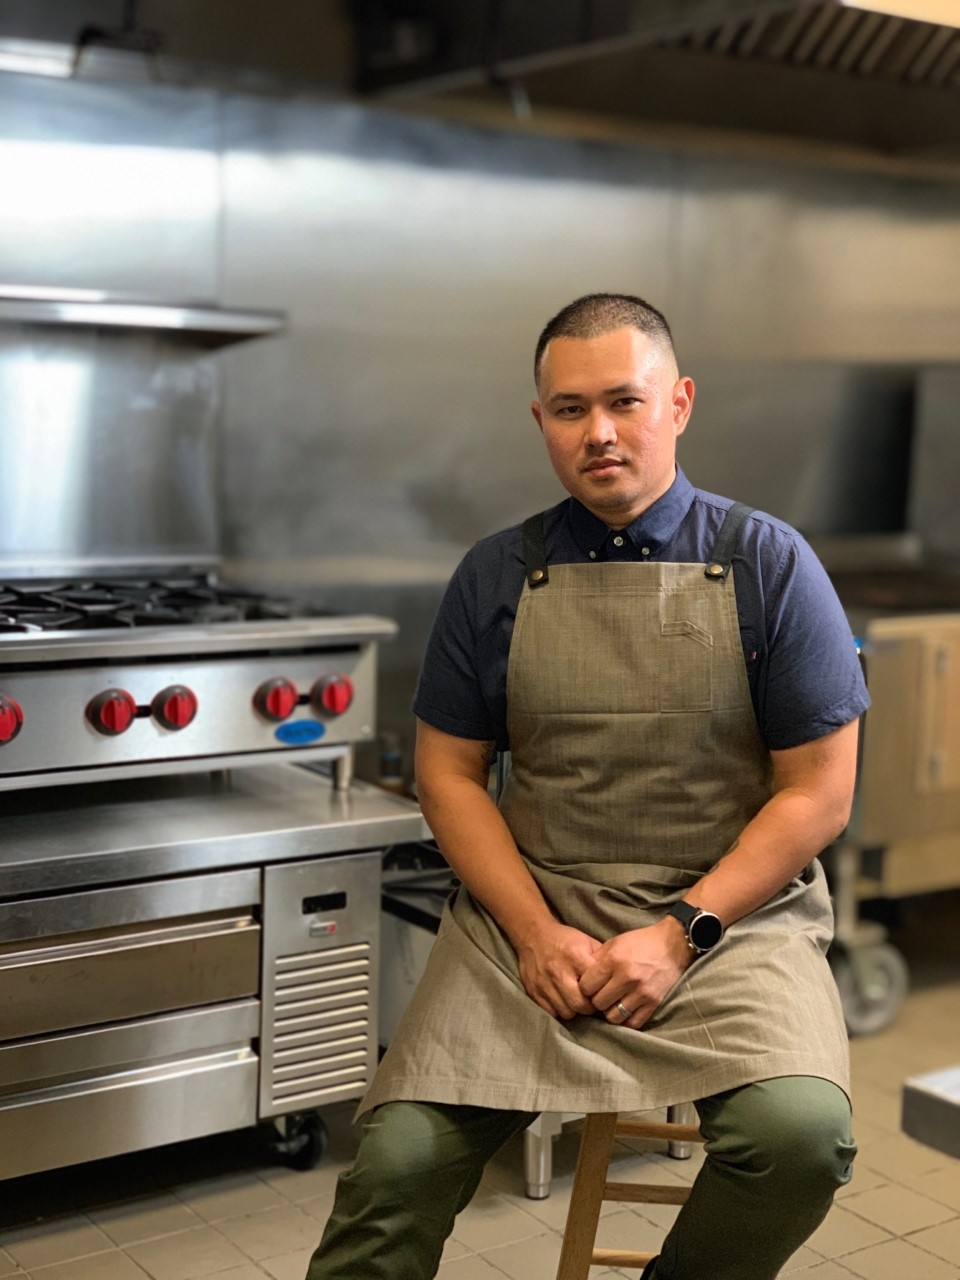 Chef Kevin Top sits on a stool inside the commercial kitchen in Plano where he makes his Cambodian food.